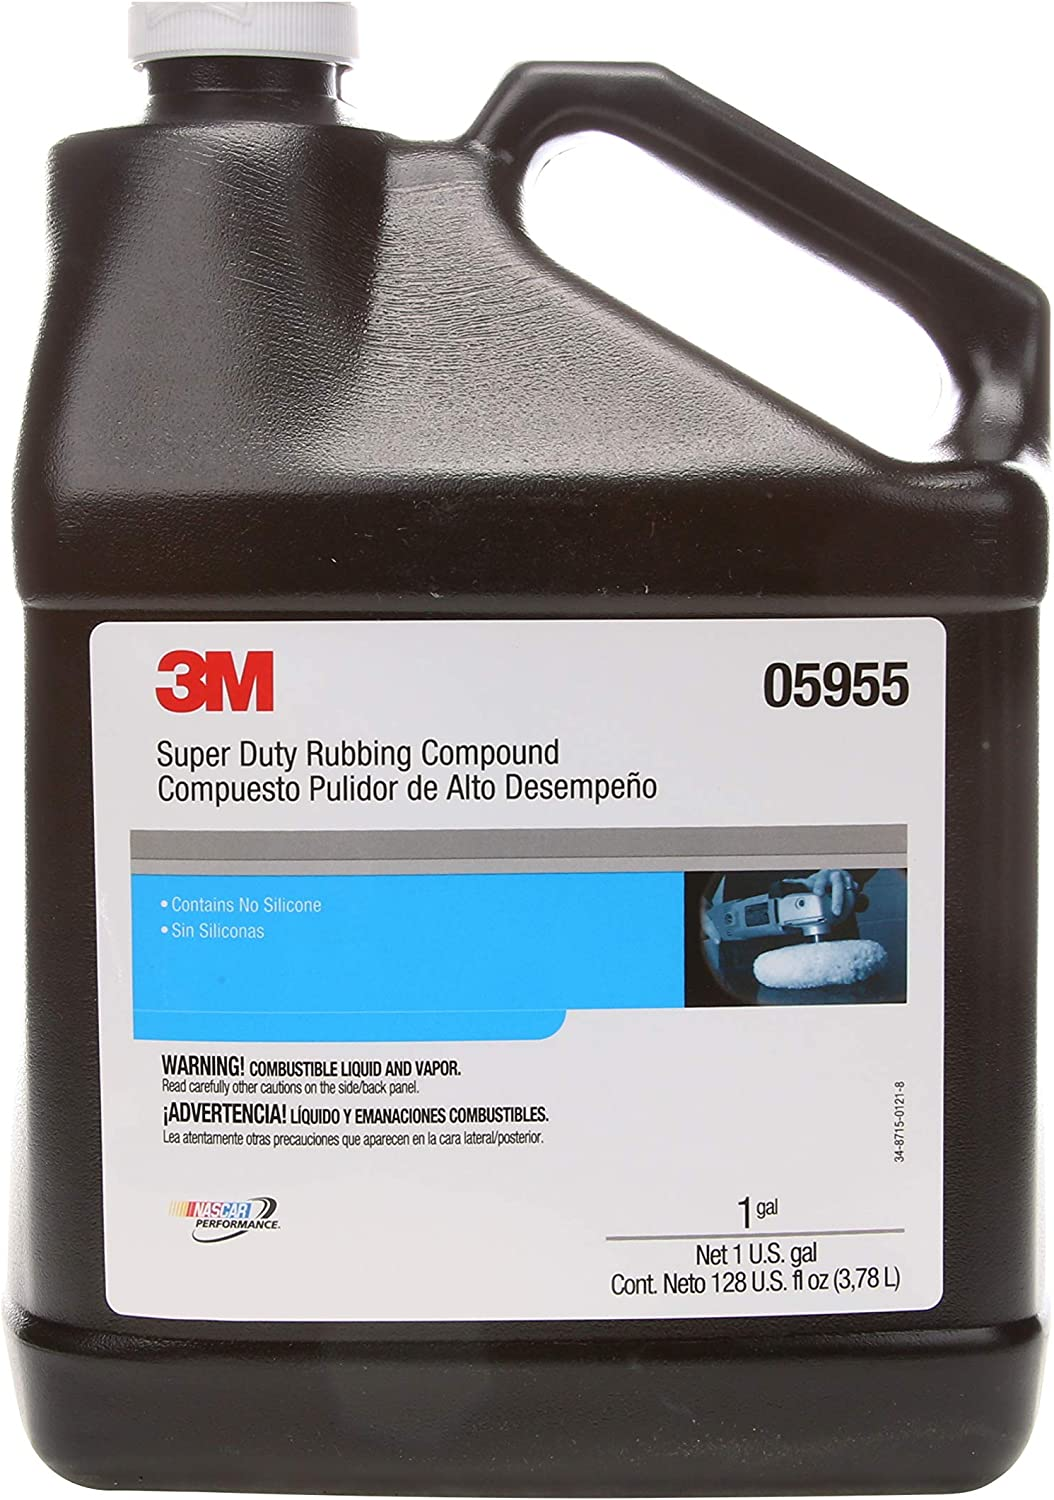 3M Super Duty Rubbing Compound, 05955, 1 gal (10.6 lb)